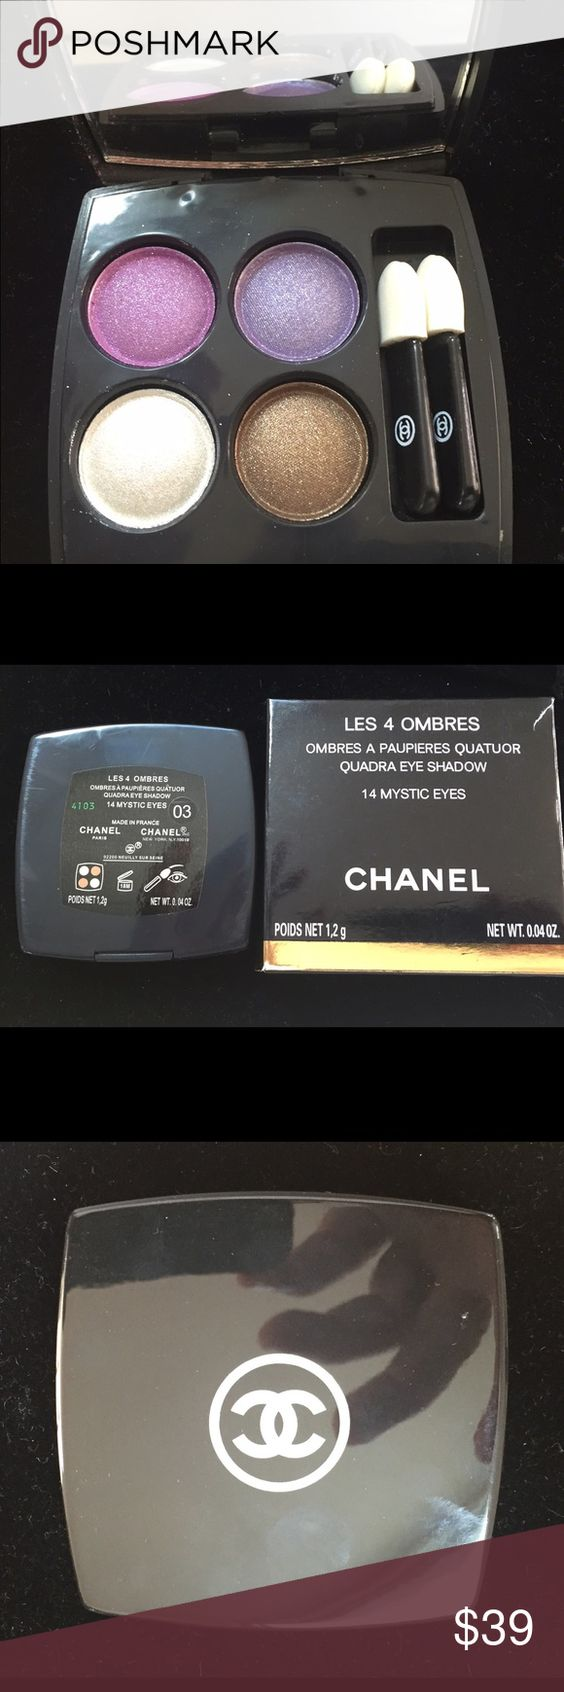 CHANEL EYESHADOW #03 BRAND NEW EYESHADOW #3 CHANEL CHANEL Makeup Eyeshadow